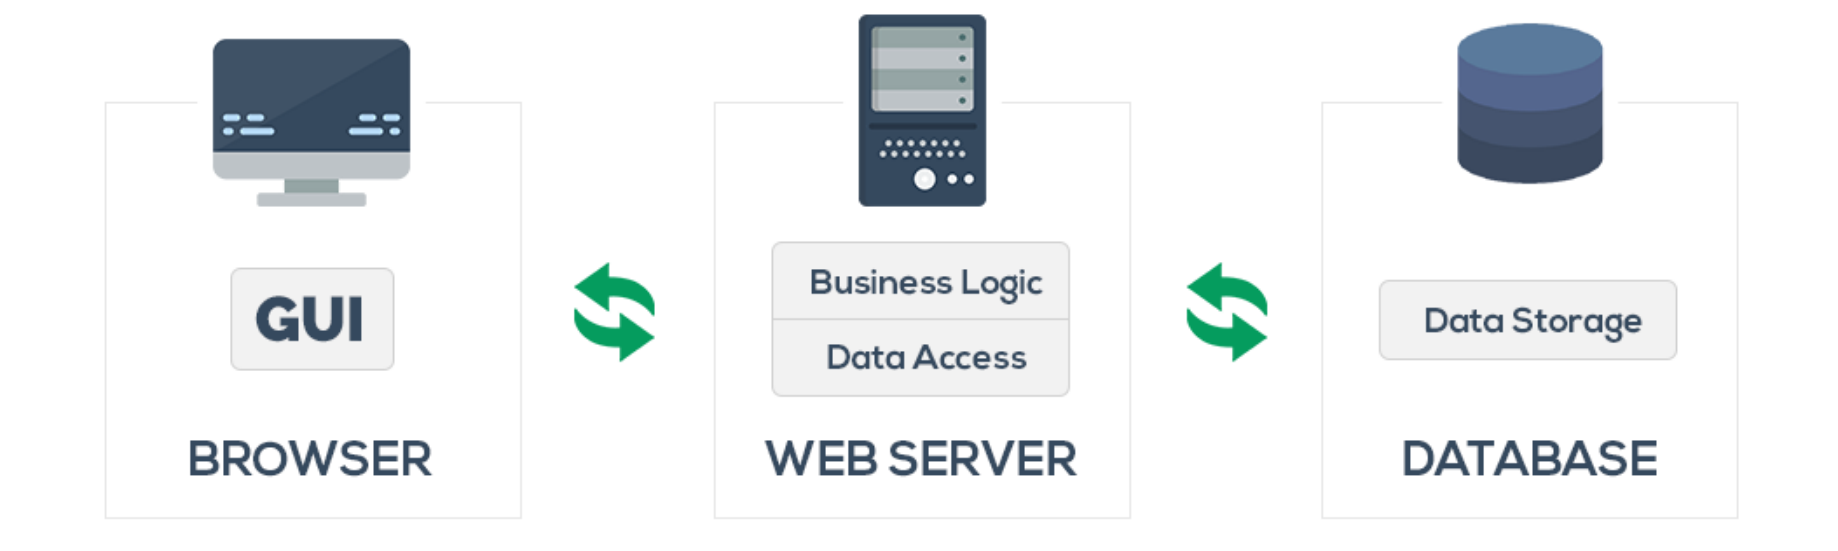 How to choose the right technologies for web applications?